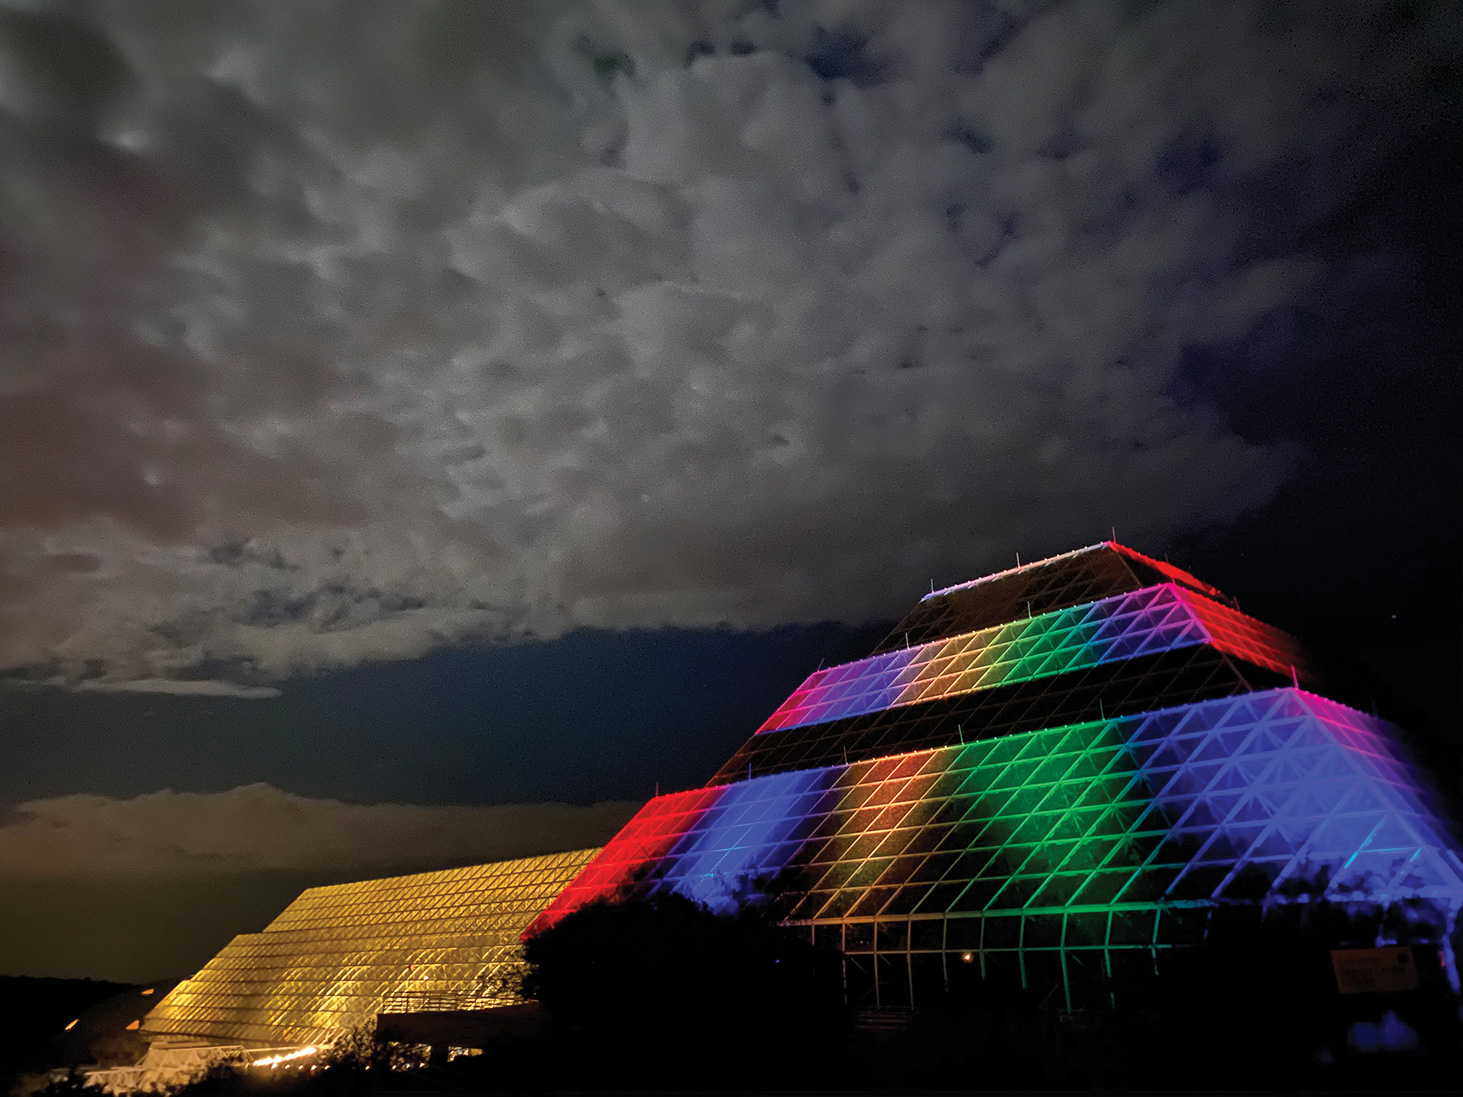 Biosphere 2 will be lit up at night during self-guided driving tours. (Photo by Taylor Adams)